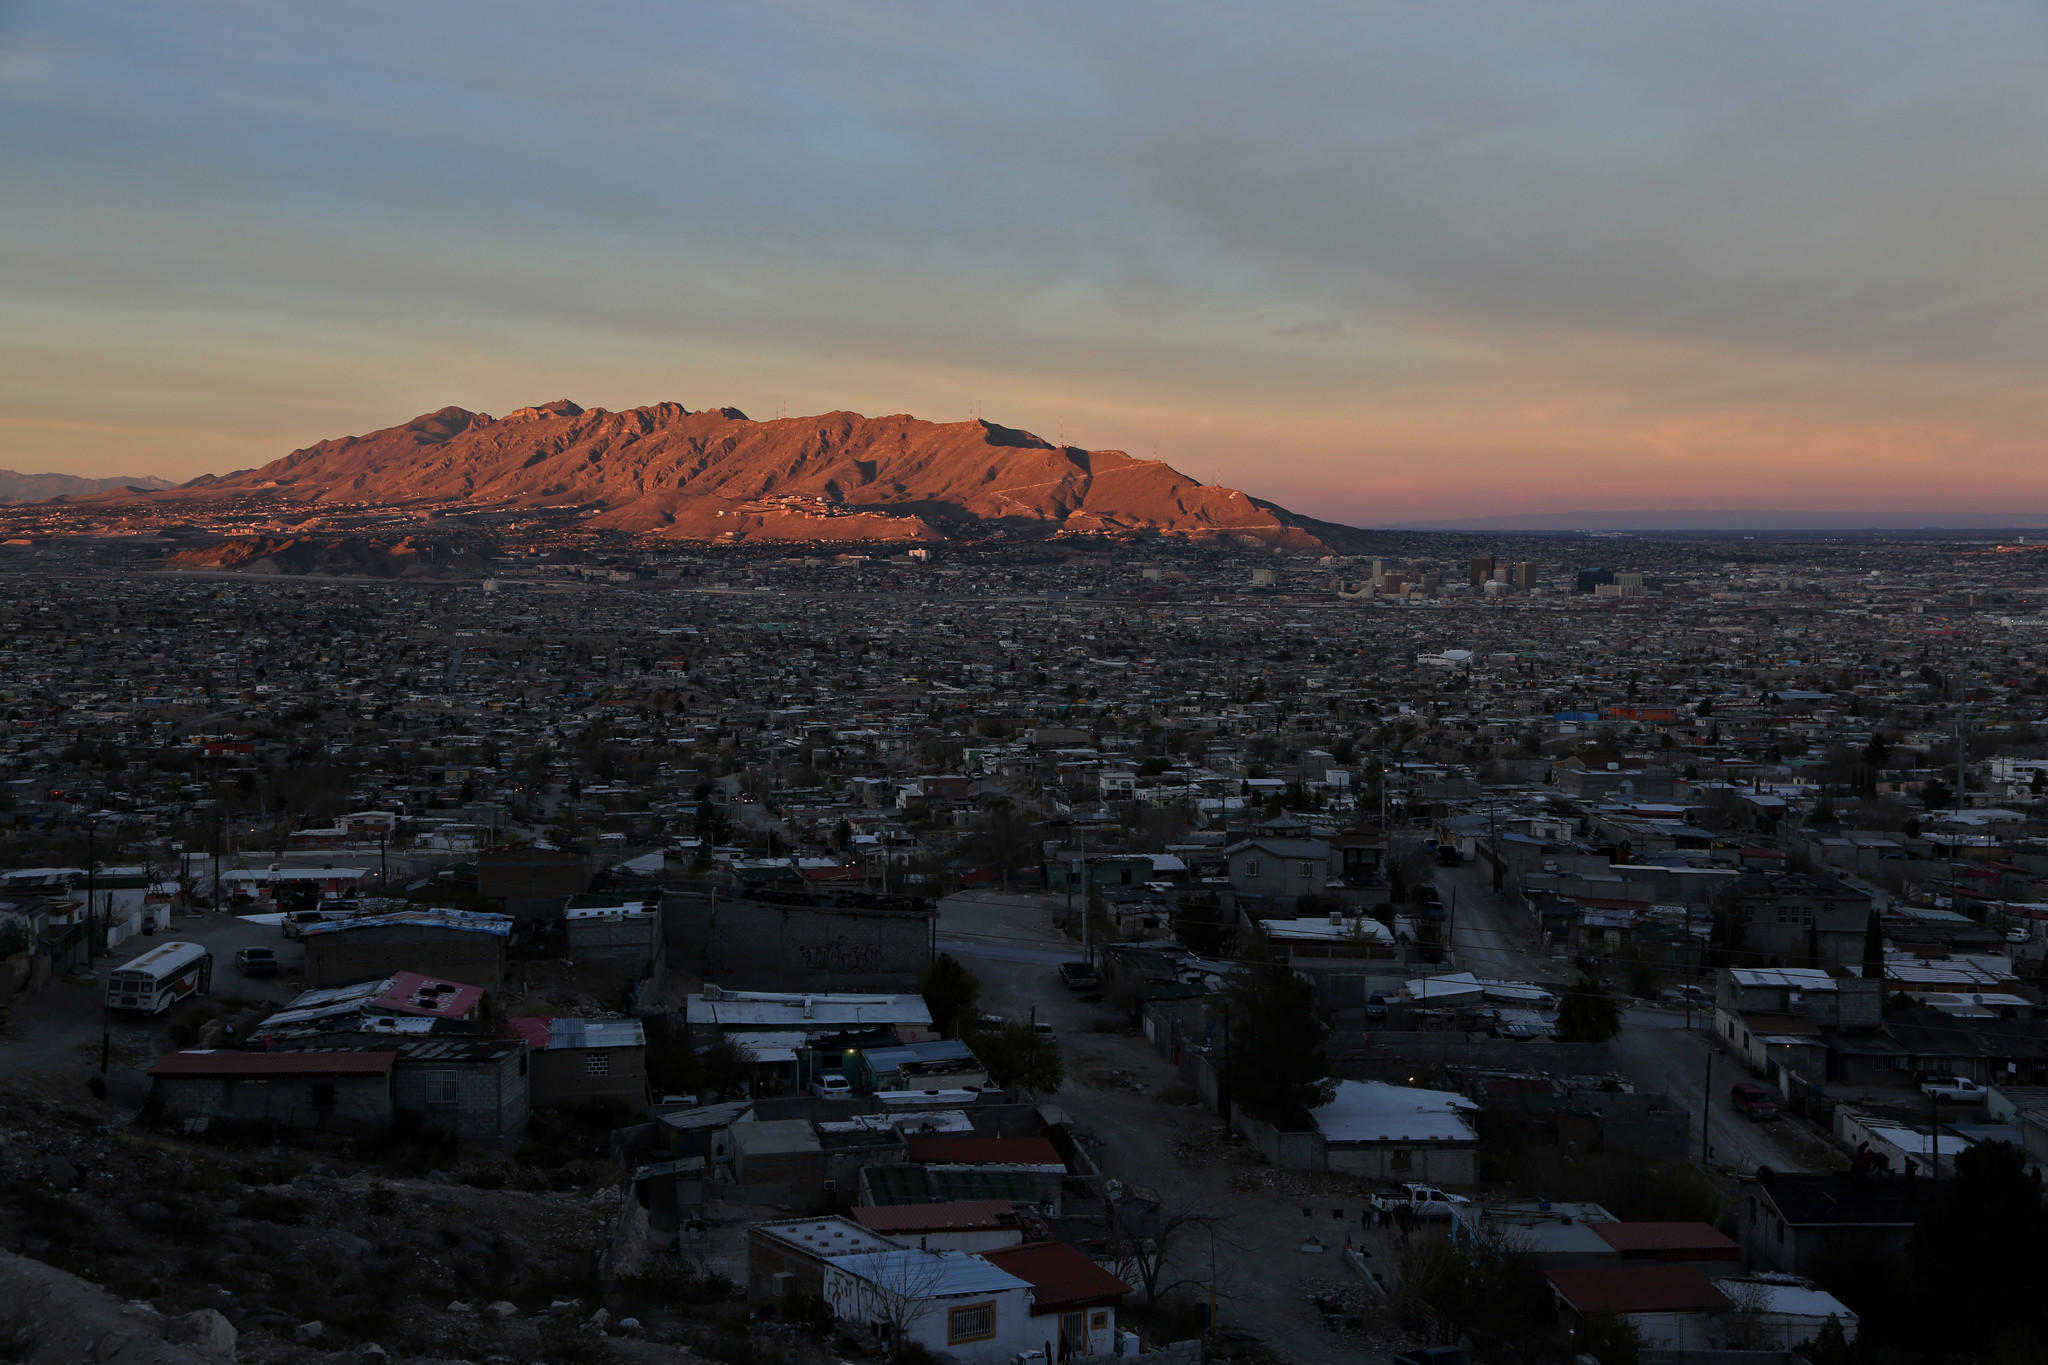 The sun sets over Juarez, Mexico, where many maquiladoras are located.